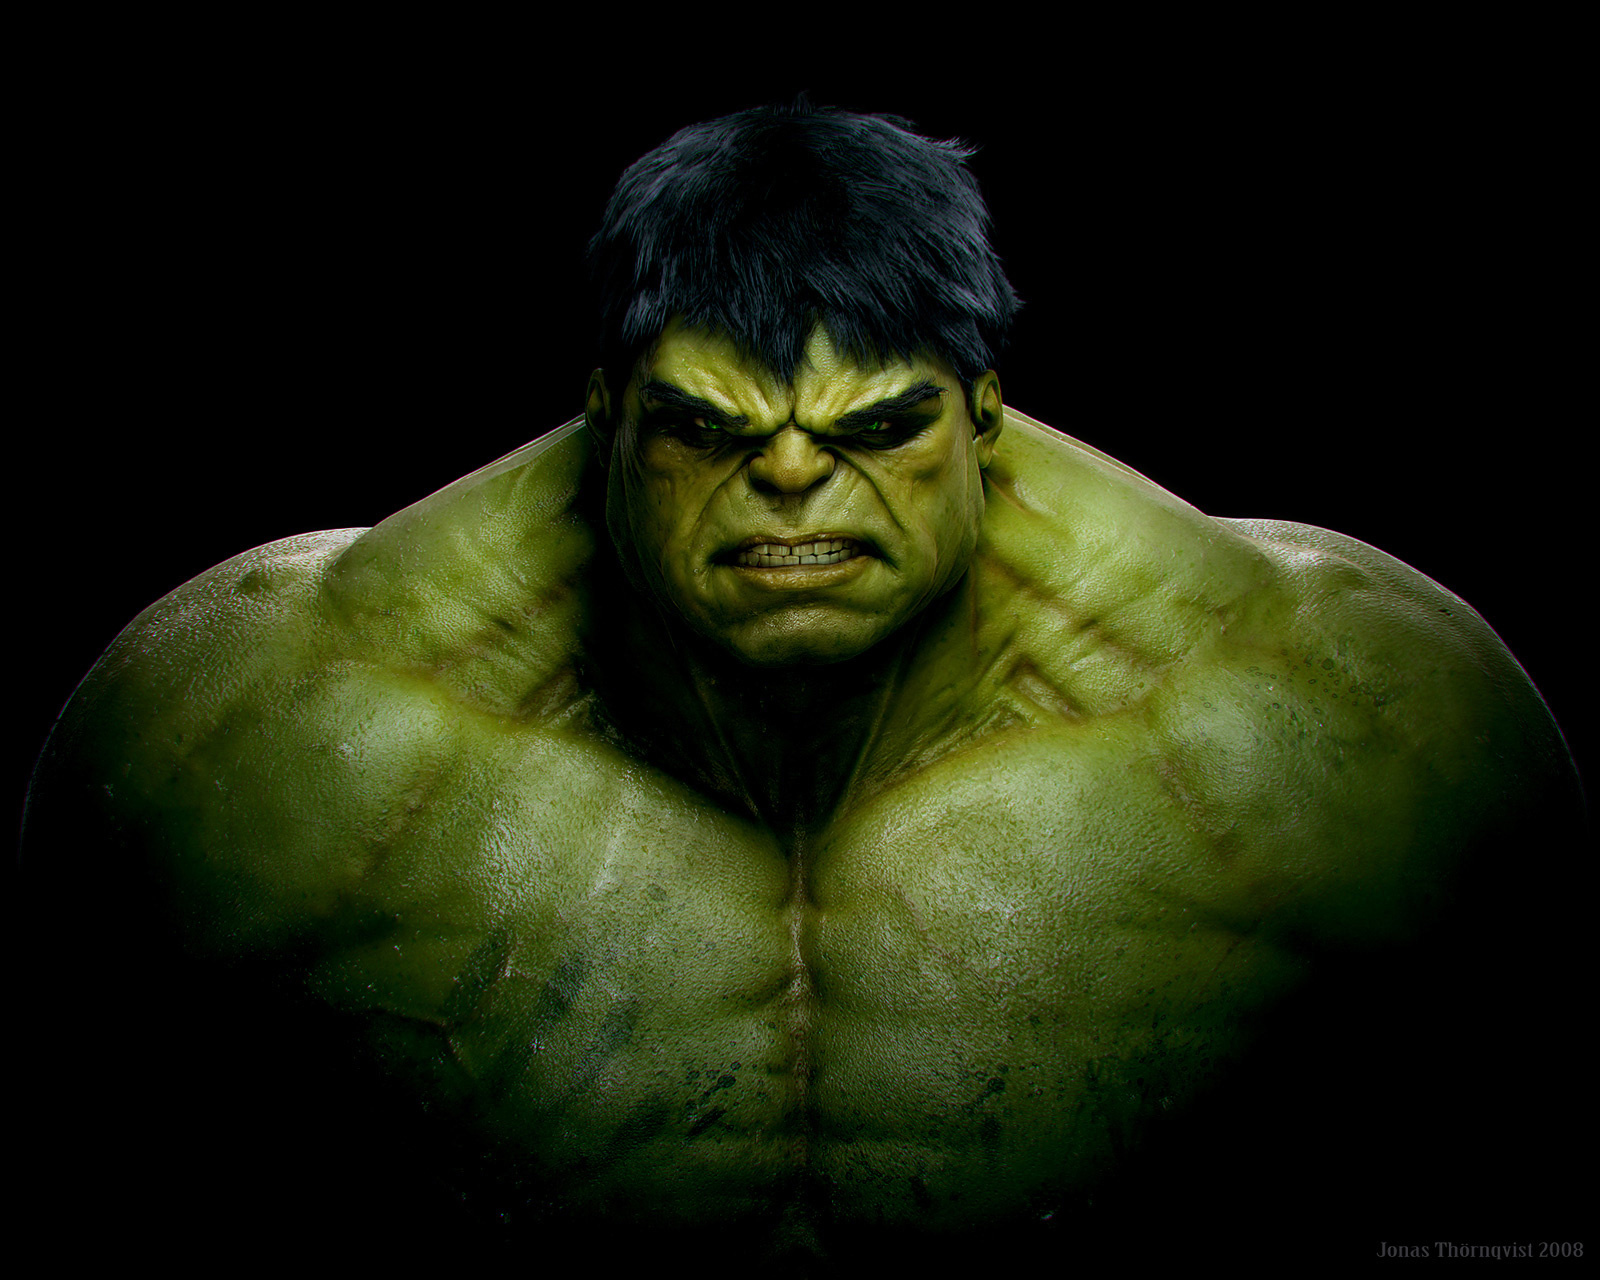 The best Hulk wallpaper ever Hulk wallpapers 1600x1280